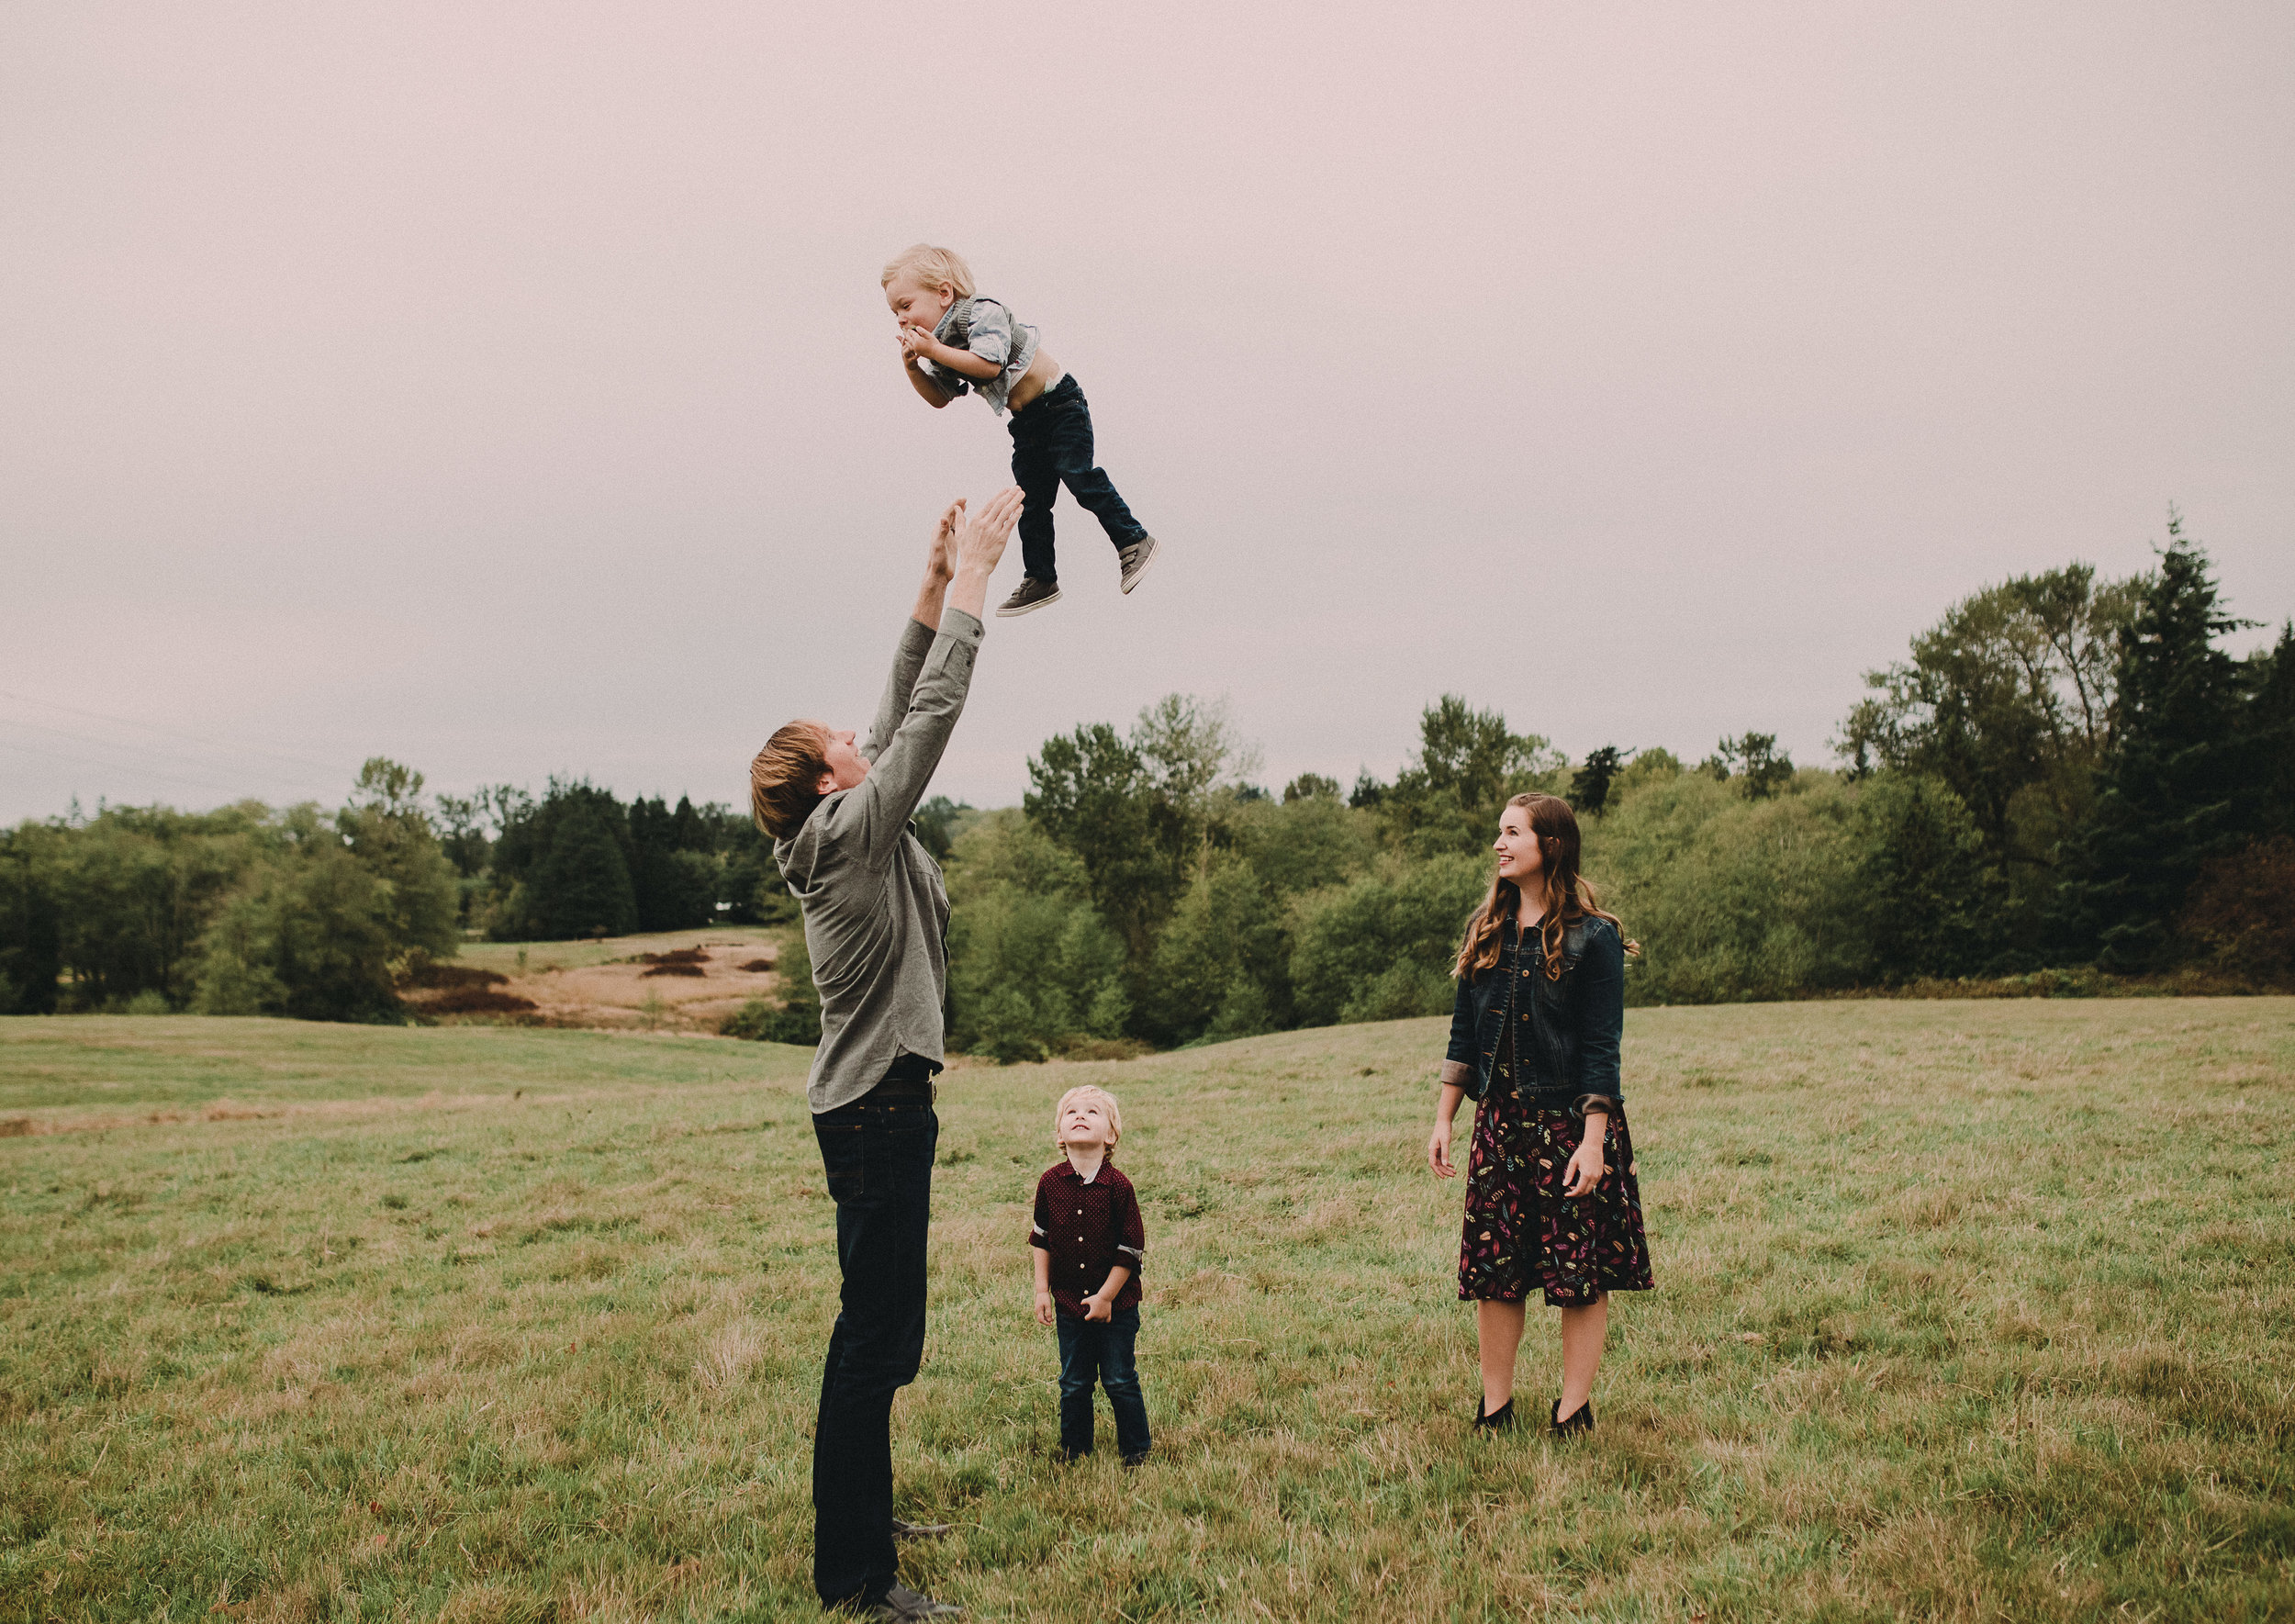 Family-Photographer-Bellingham-WA-Brianne-Bell-Photography-(Hayes)